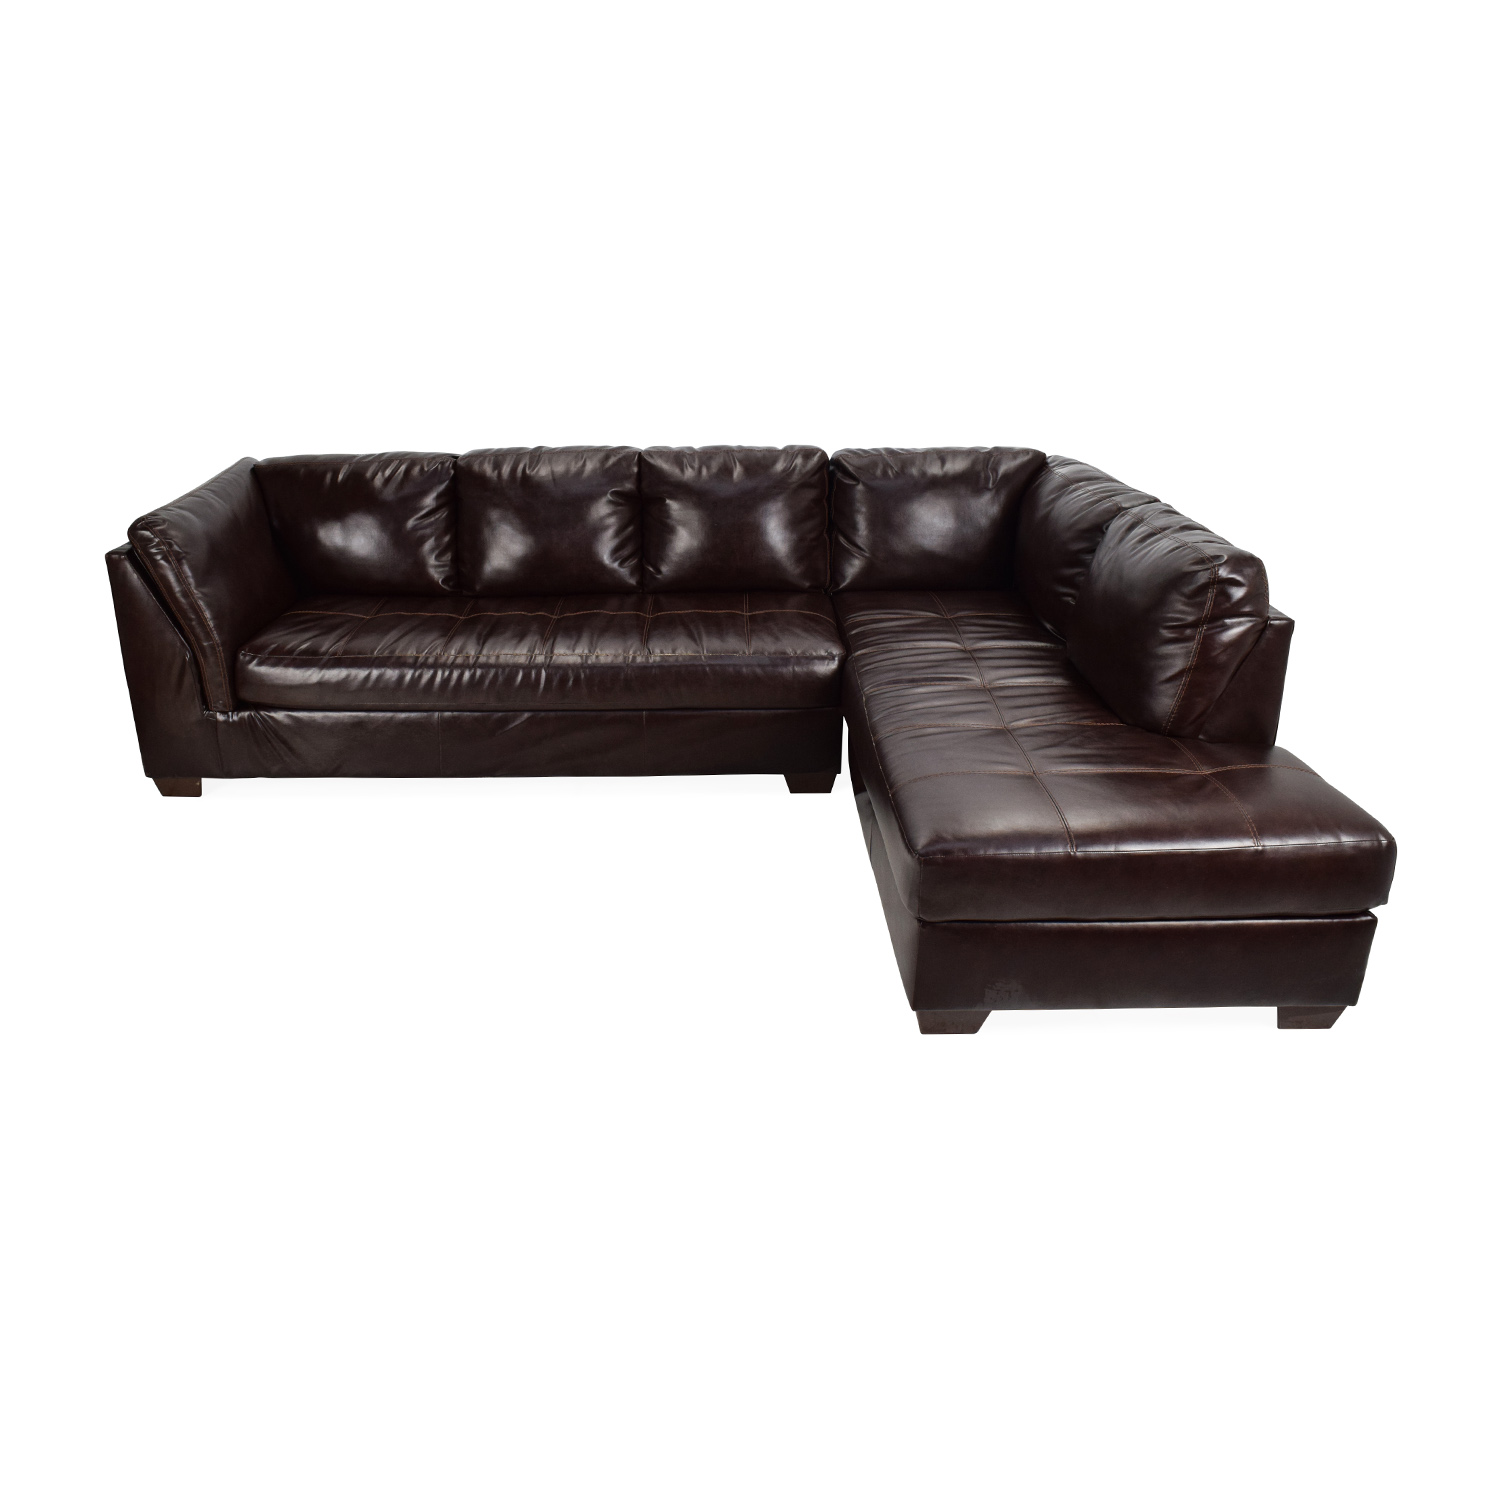 Jennifer Convertibles Jennifer Convertibles Brown Leather Sectional nj